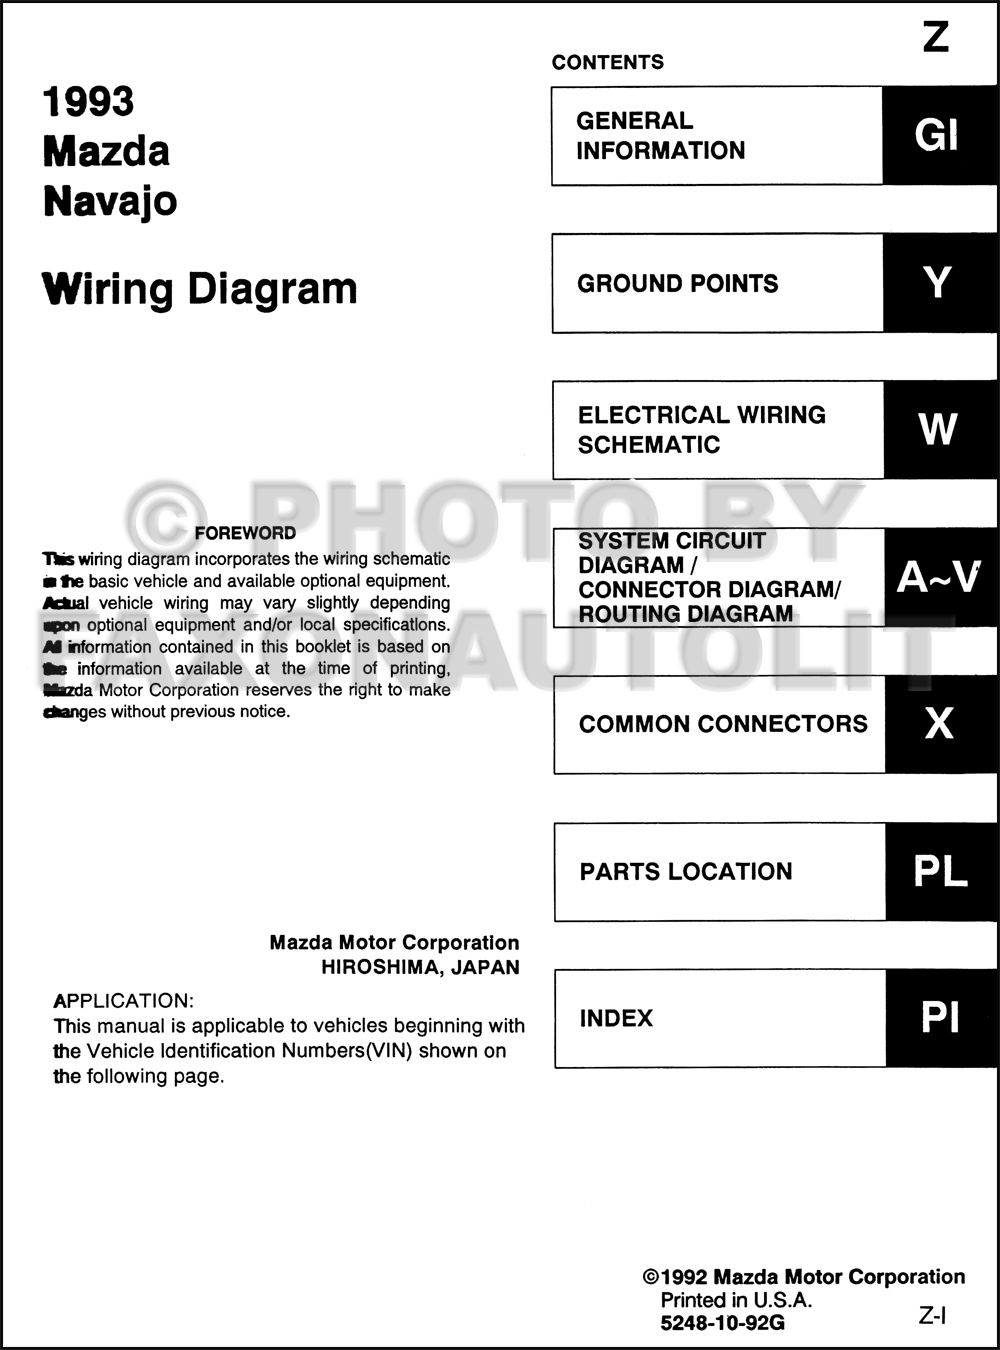 1993 Mazda Navajo Wiring Diagram Manual Original